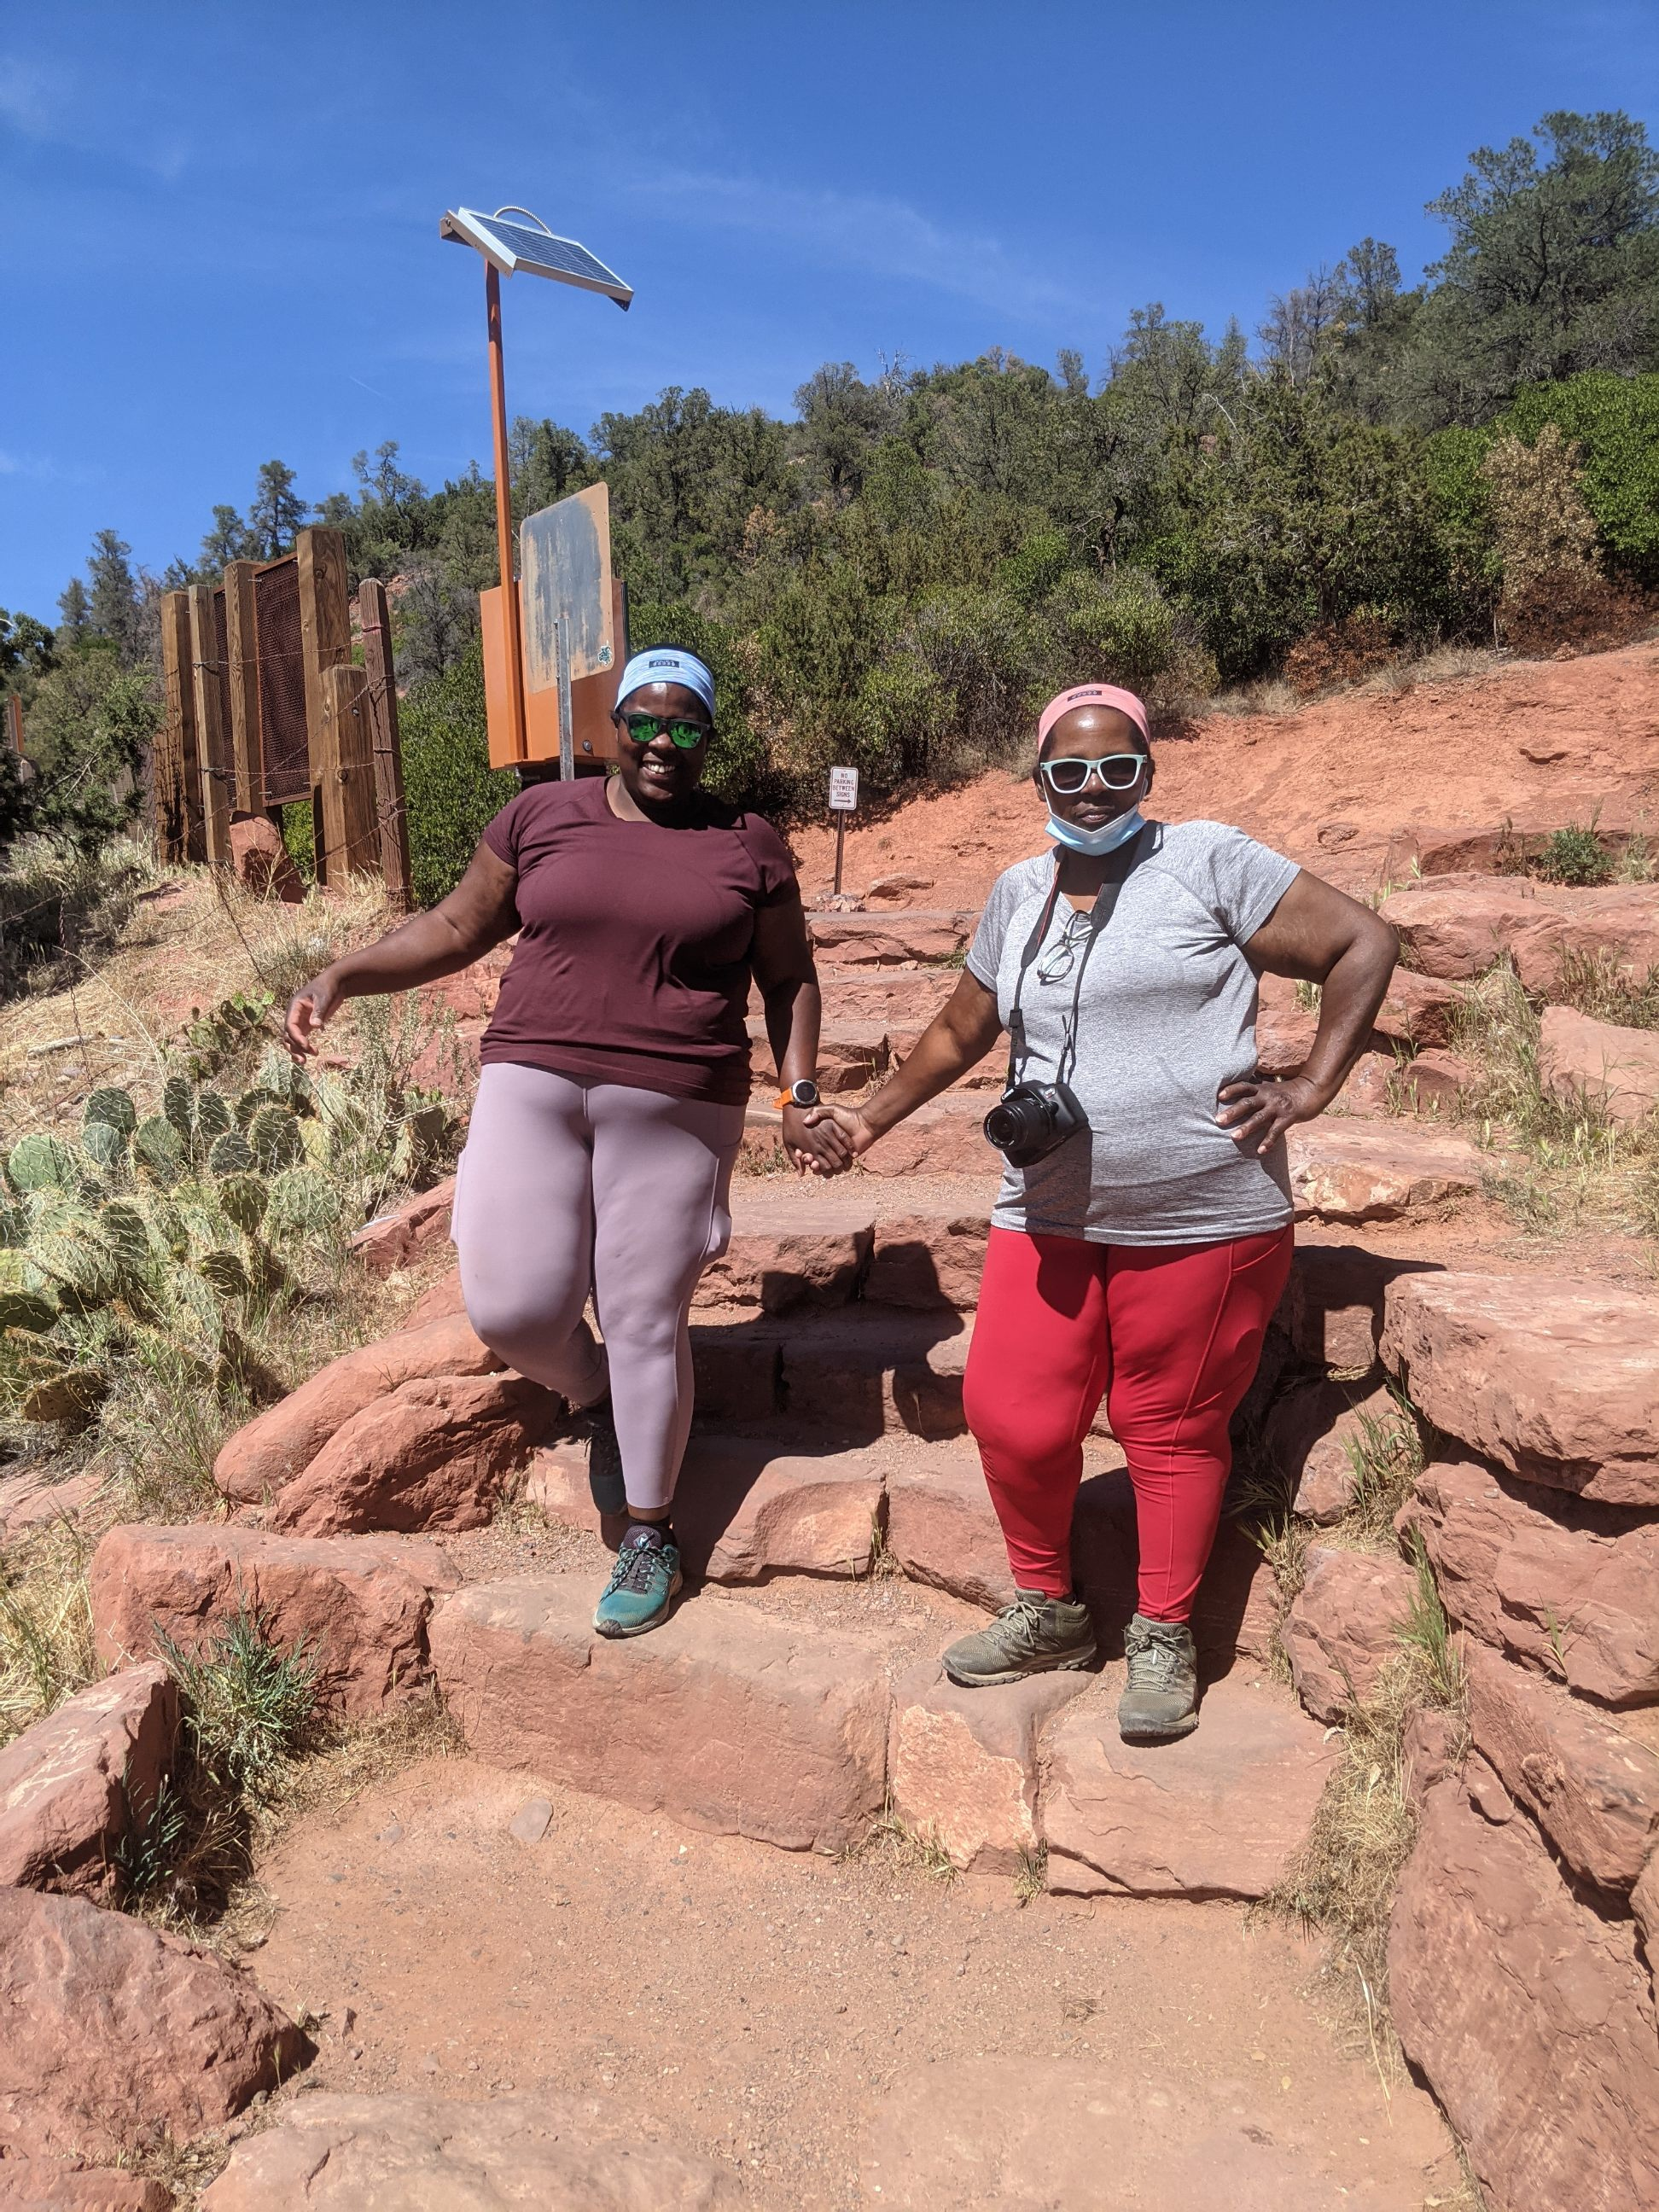 Mirna Valerio (left) and her mother JoAnn enjoy a moment together while holding hands on the Red Rocks of Sedona, Ariz.